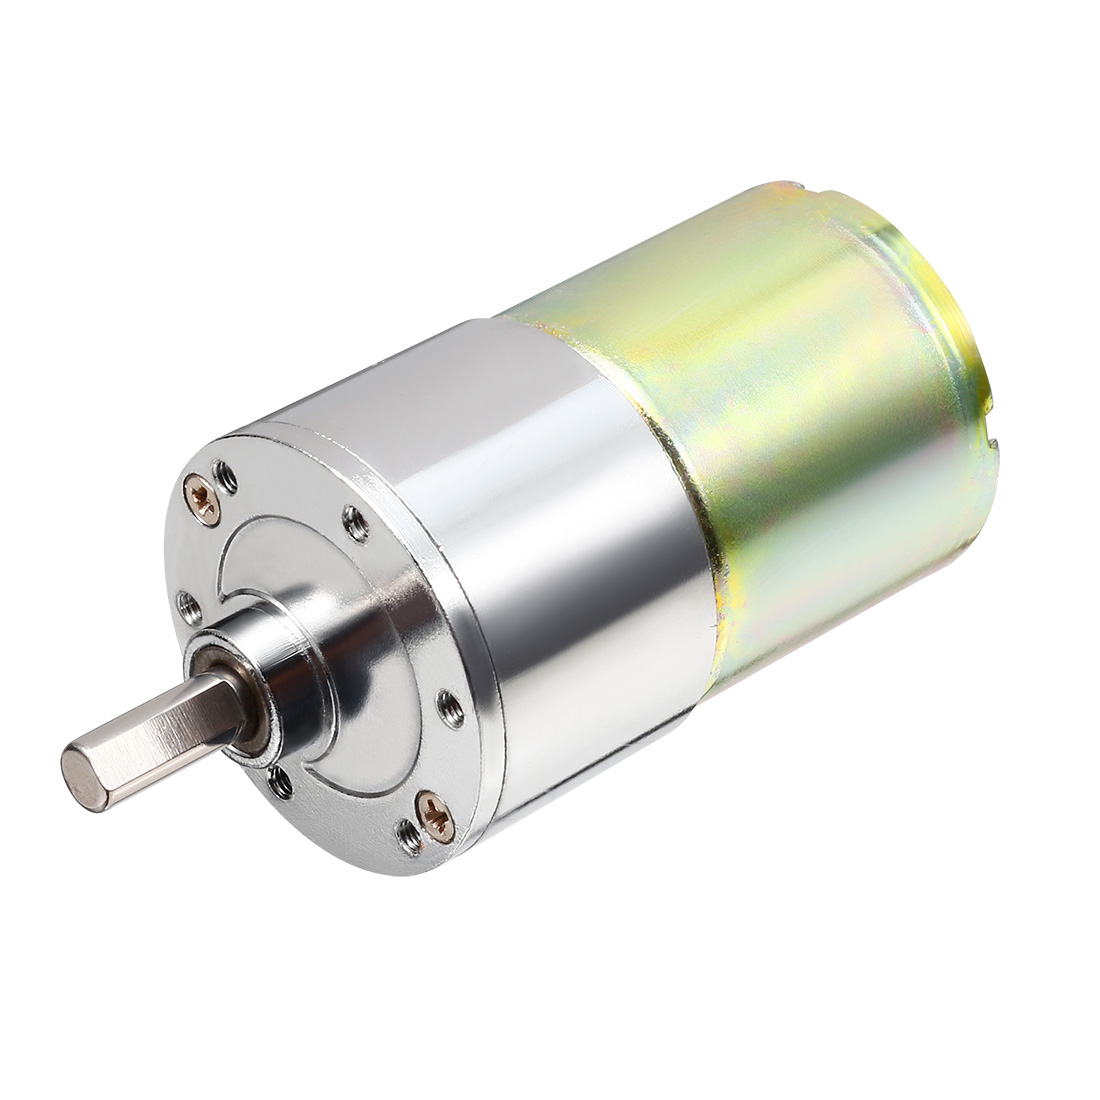 DC 24V 5RPM Micro Gear Box Motor Speed Reduction Electric Gearbox Centric Output Shaft